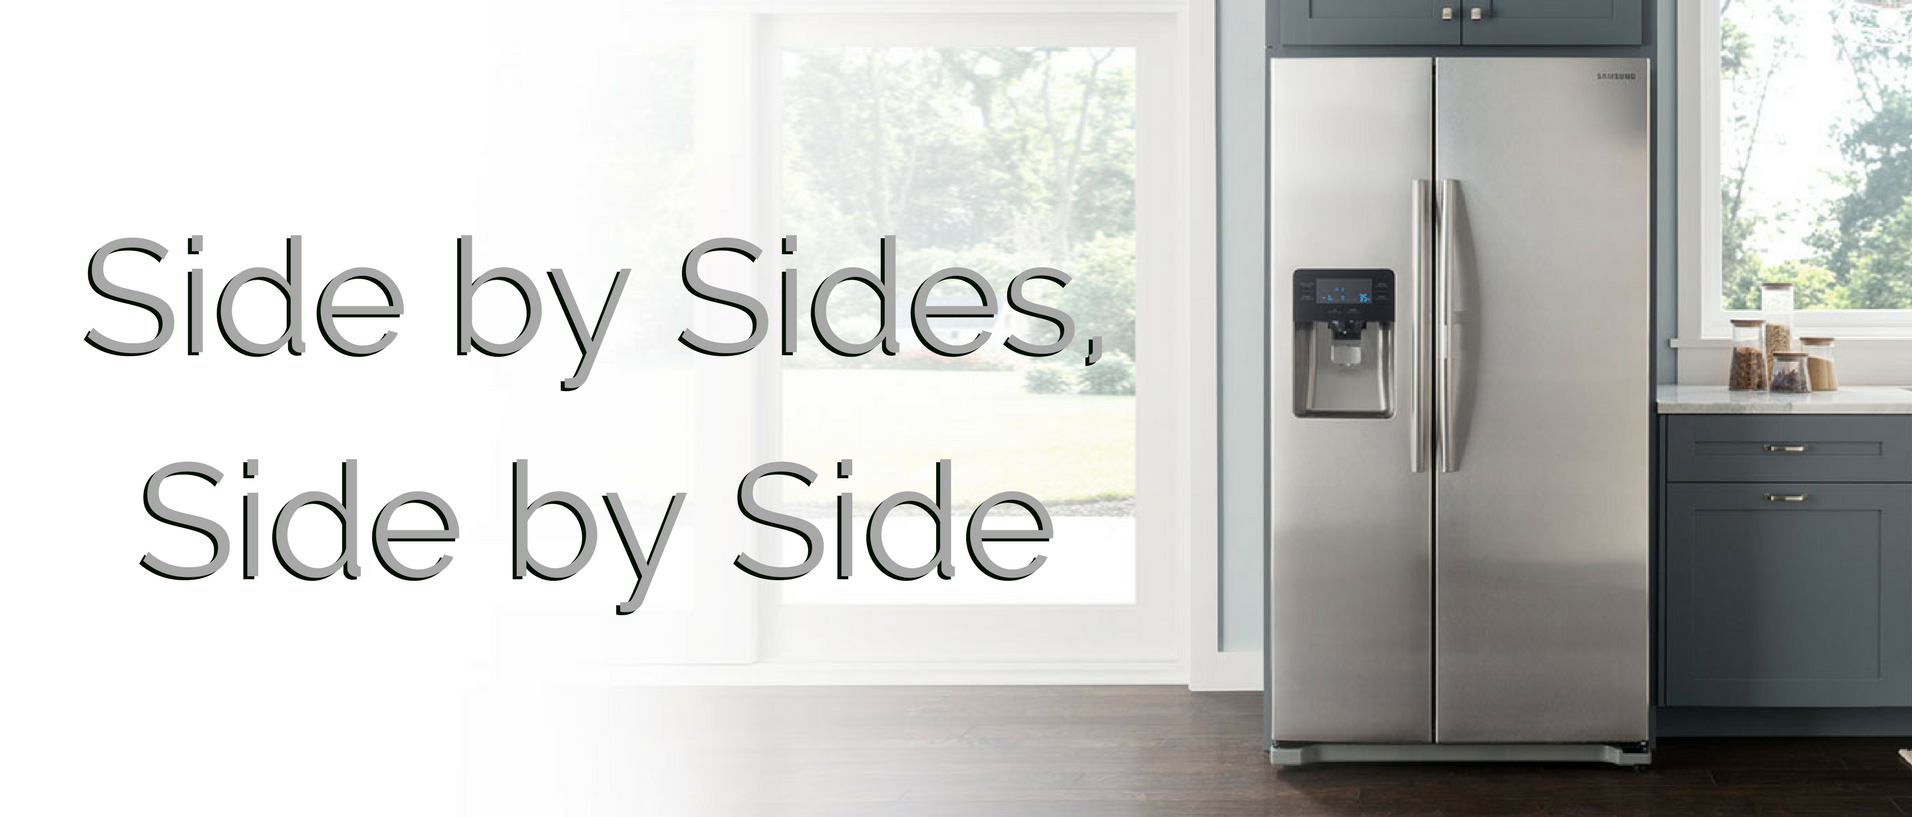 Side by side refrigerators banner